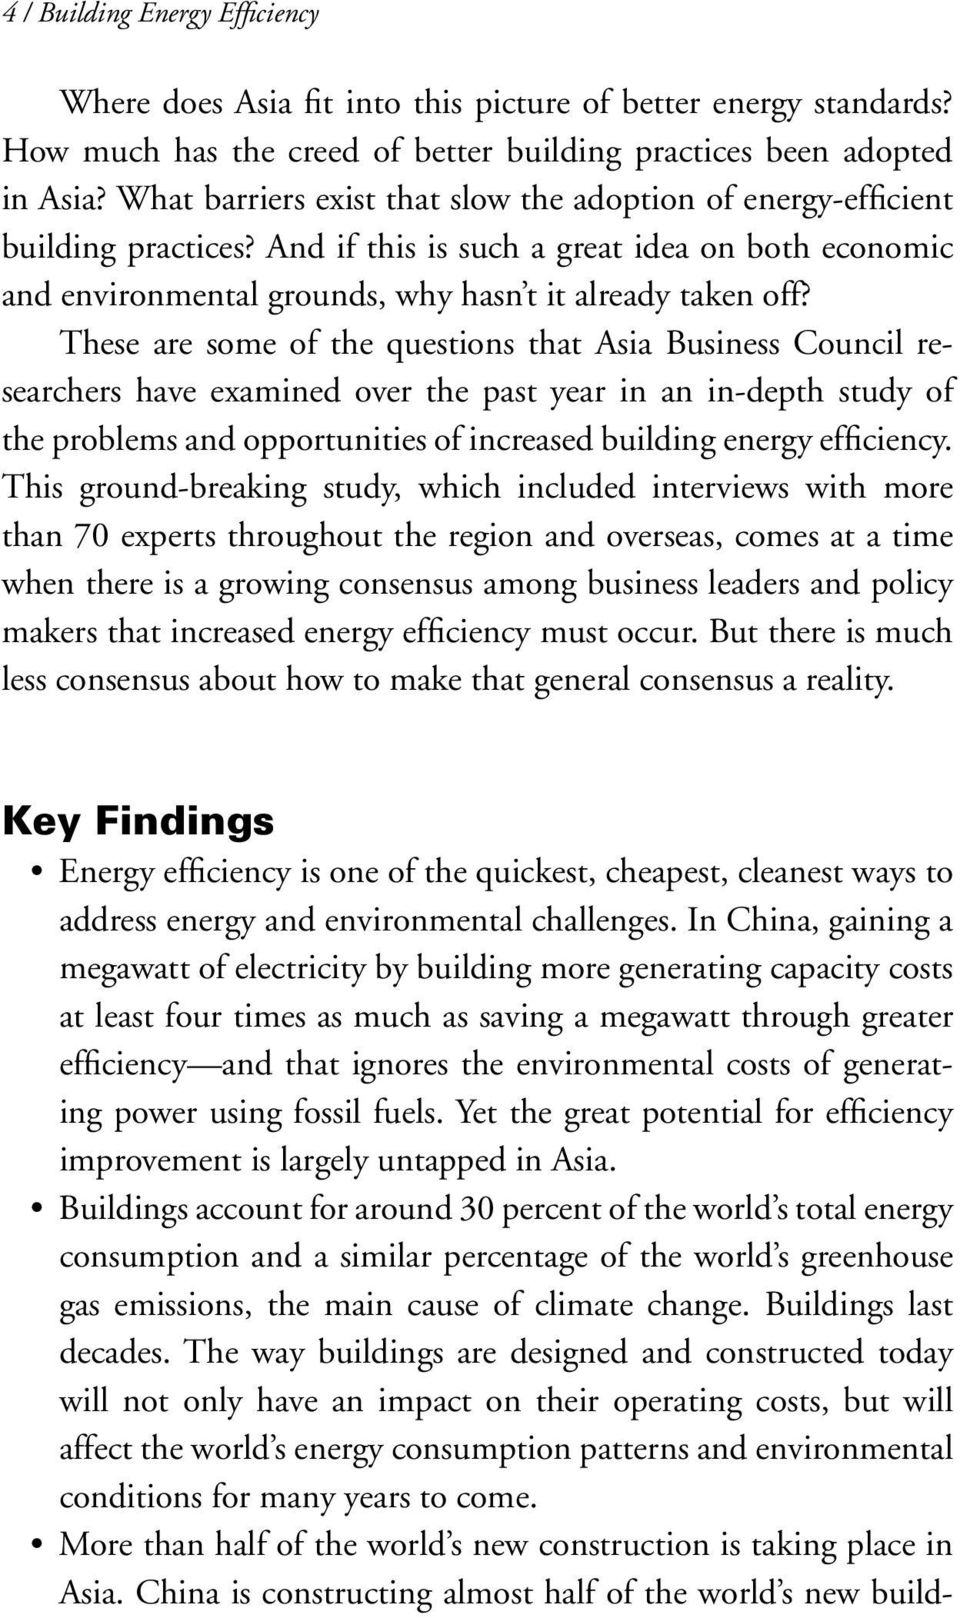 These are some of the questions that Asia Business Council researchers have examined over the past year in an in-depth study of the problems and opportunities of increased building energy efficiency.